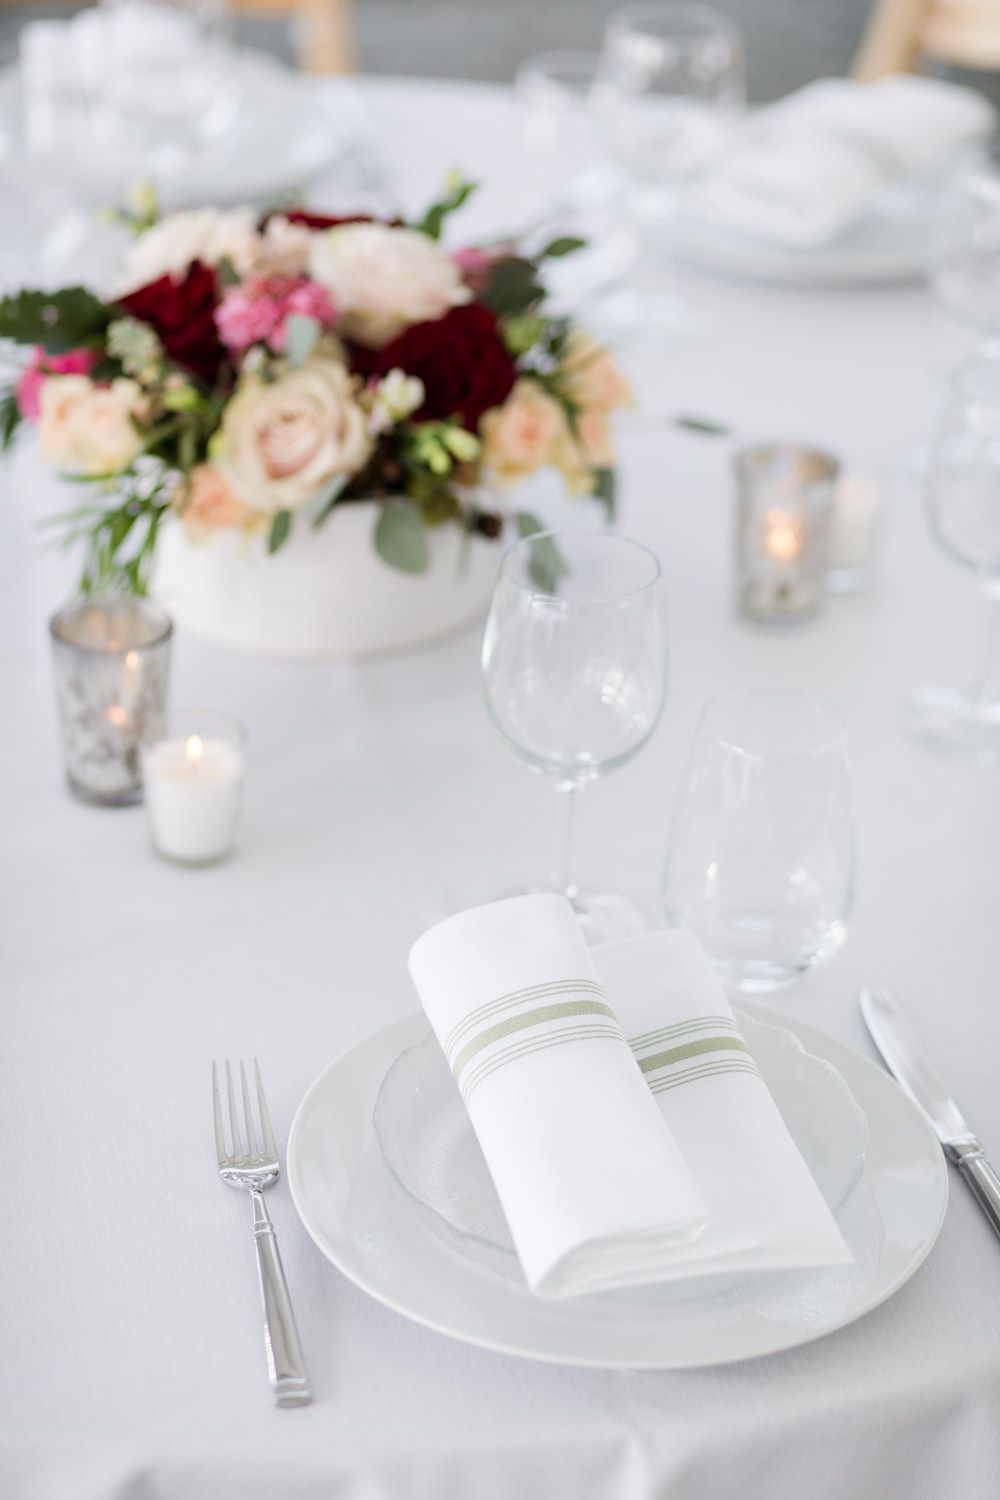 A gem toned centerpiece is paired with crisp white linens in a styled wedding table setting at the Essex Resort by photographer Stina Booth